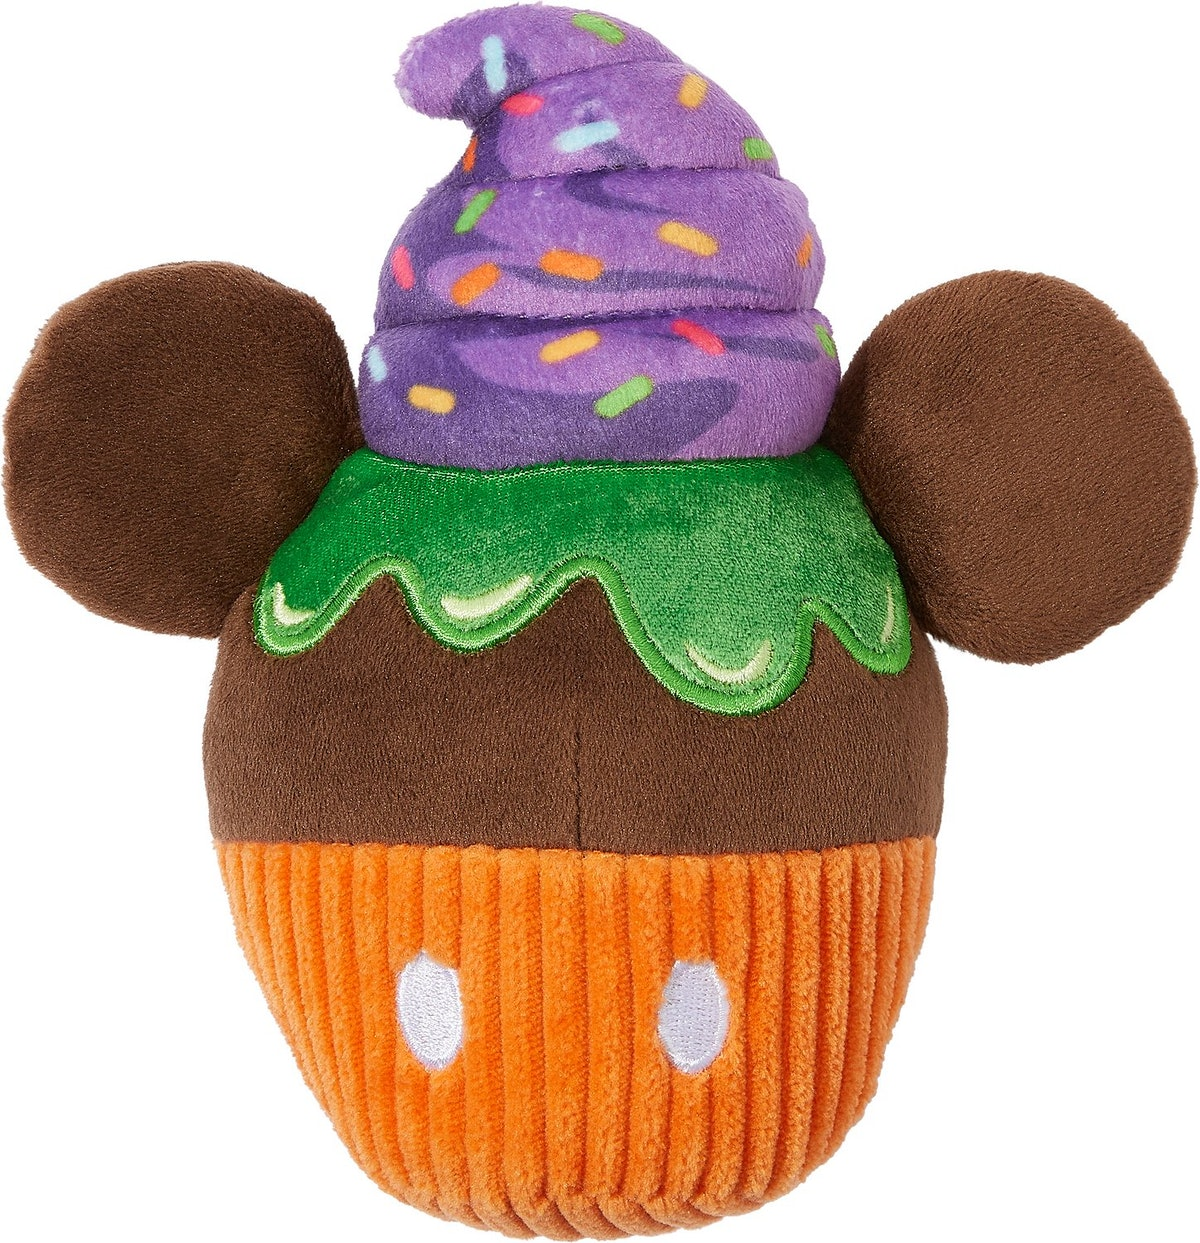 This Mickey cupcake dog toy is part of Chewy's Disney Halloween toy collection.